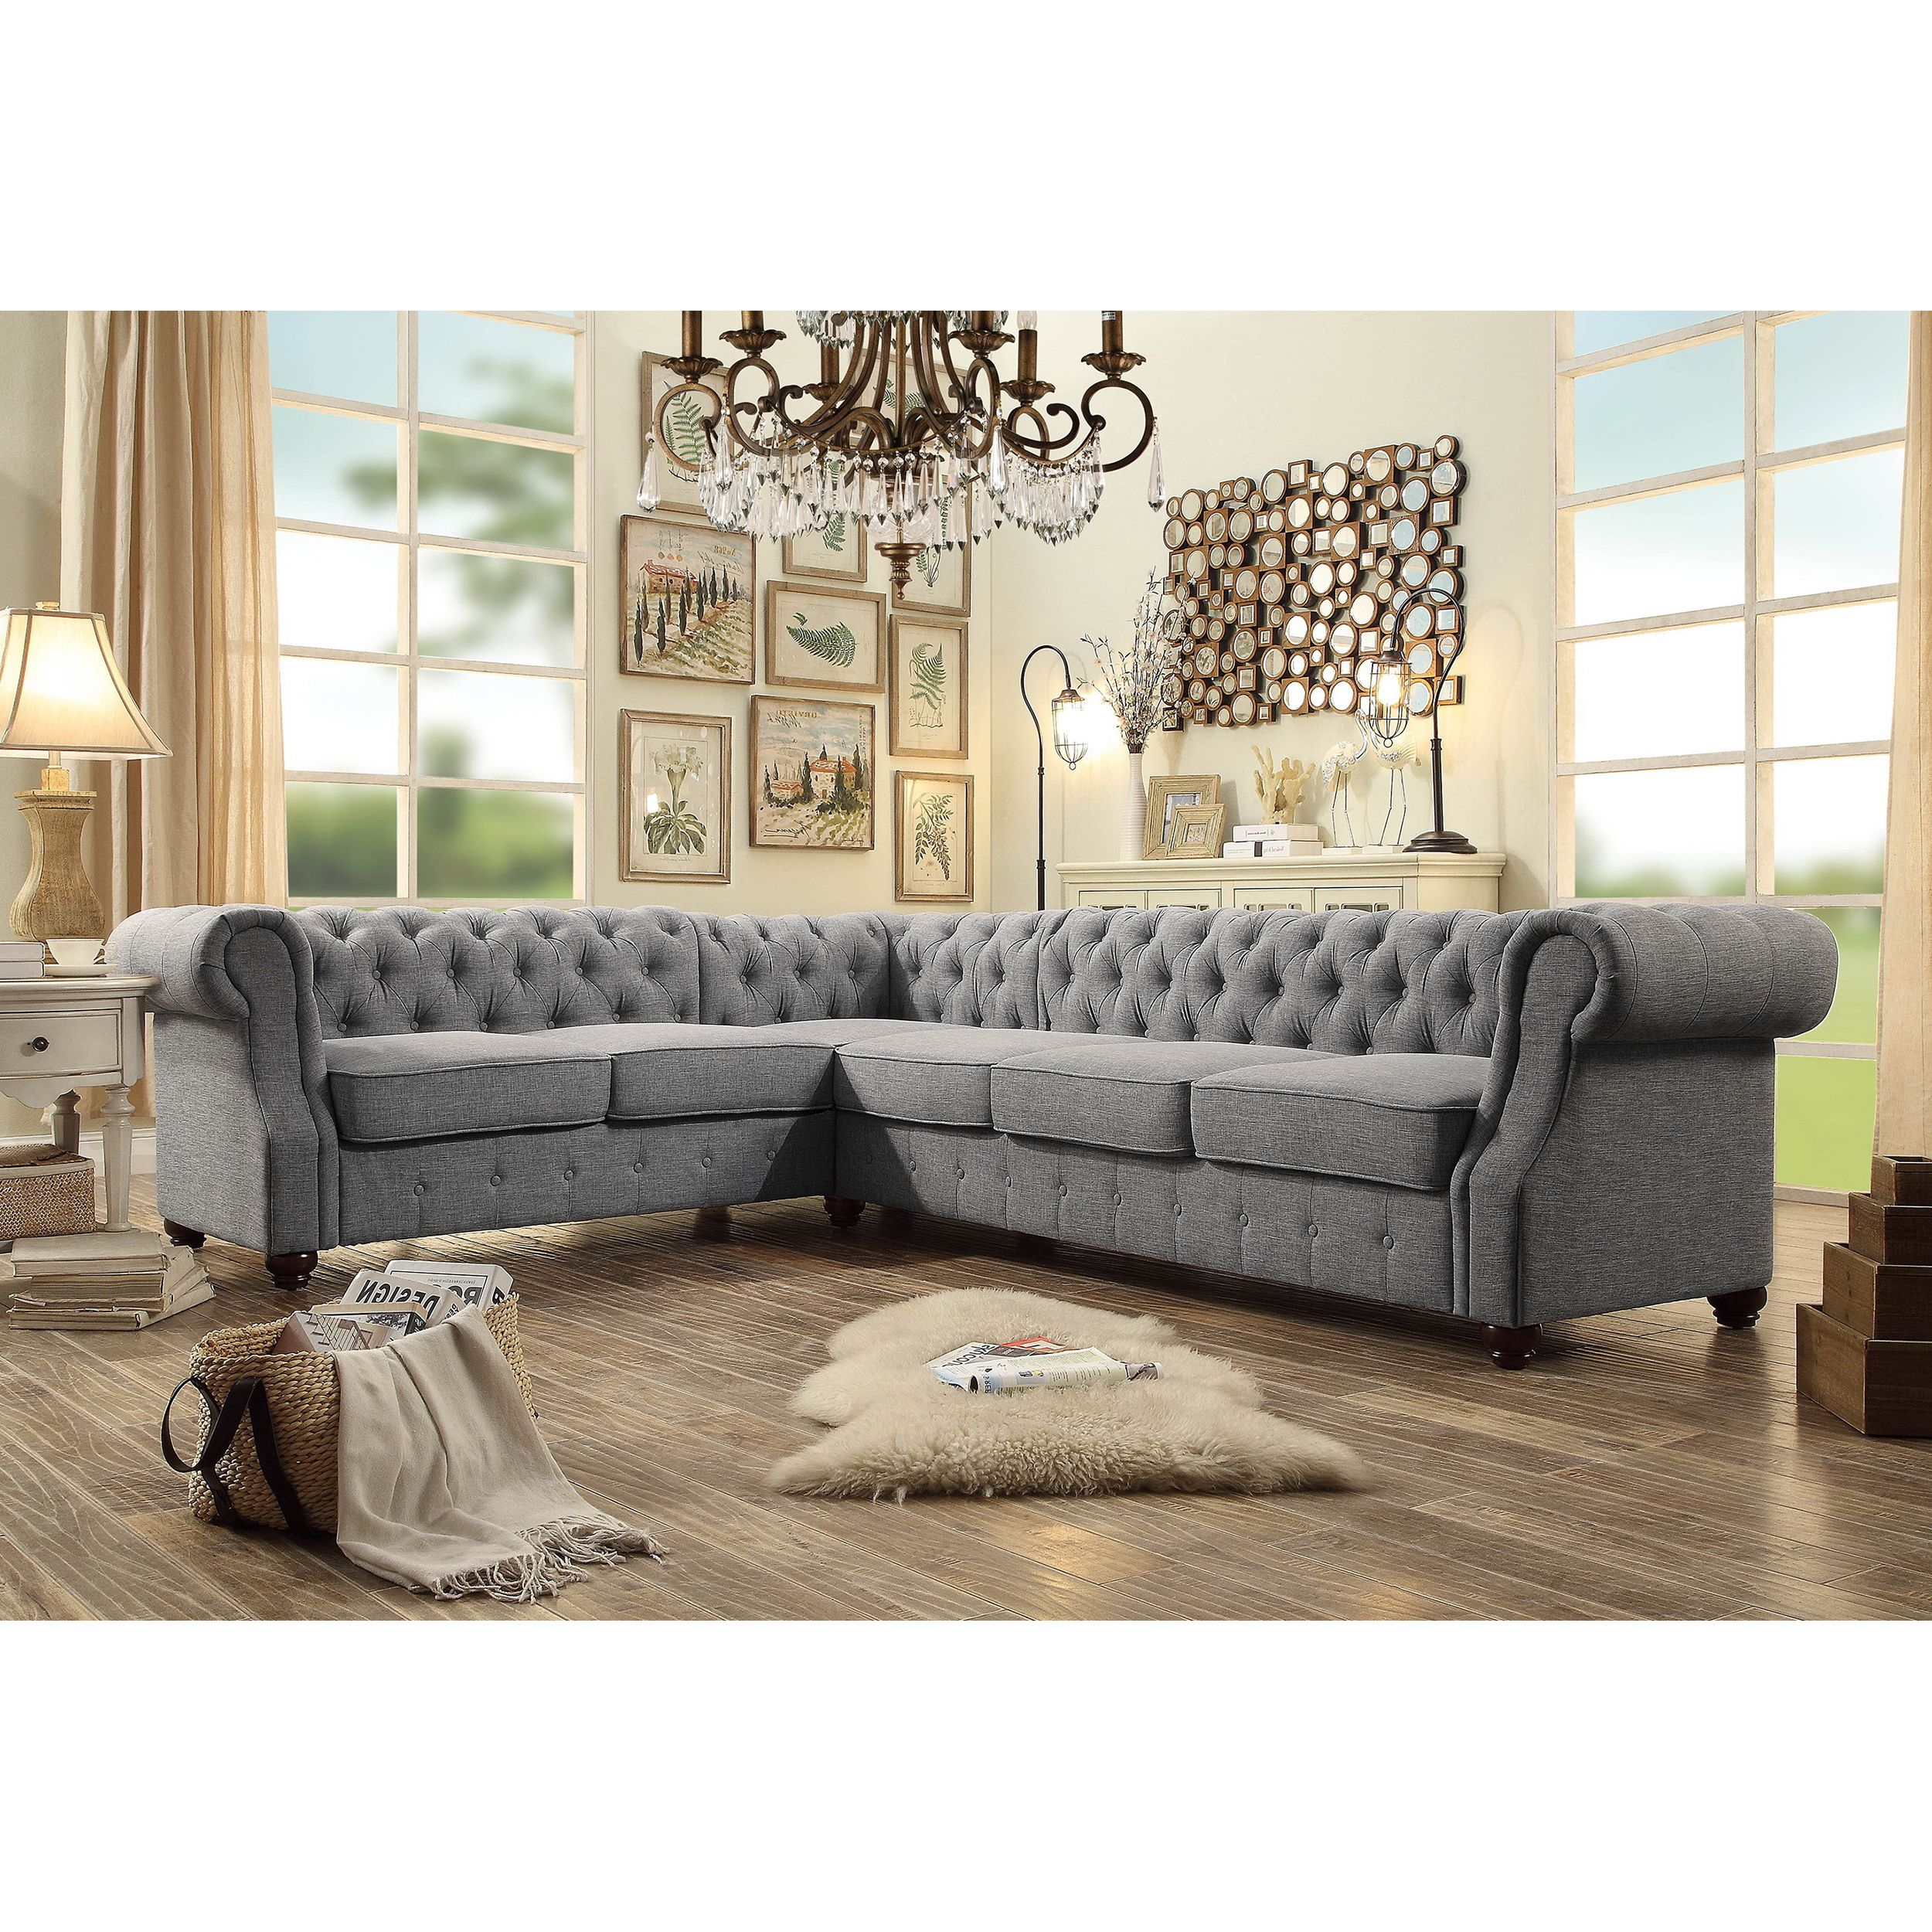 Section off your living area with this elegant tufted sectional